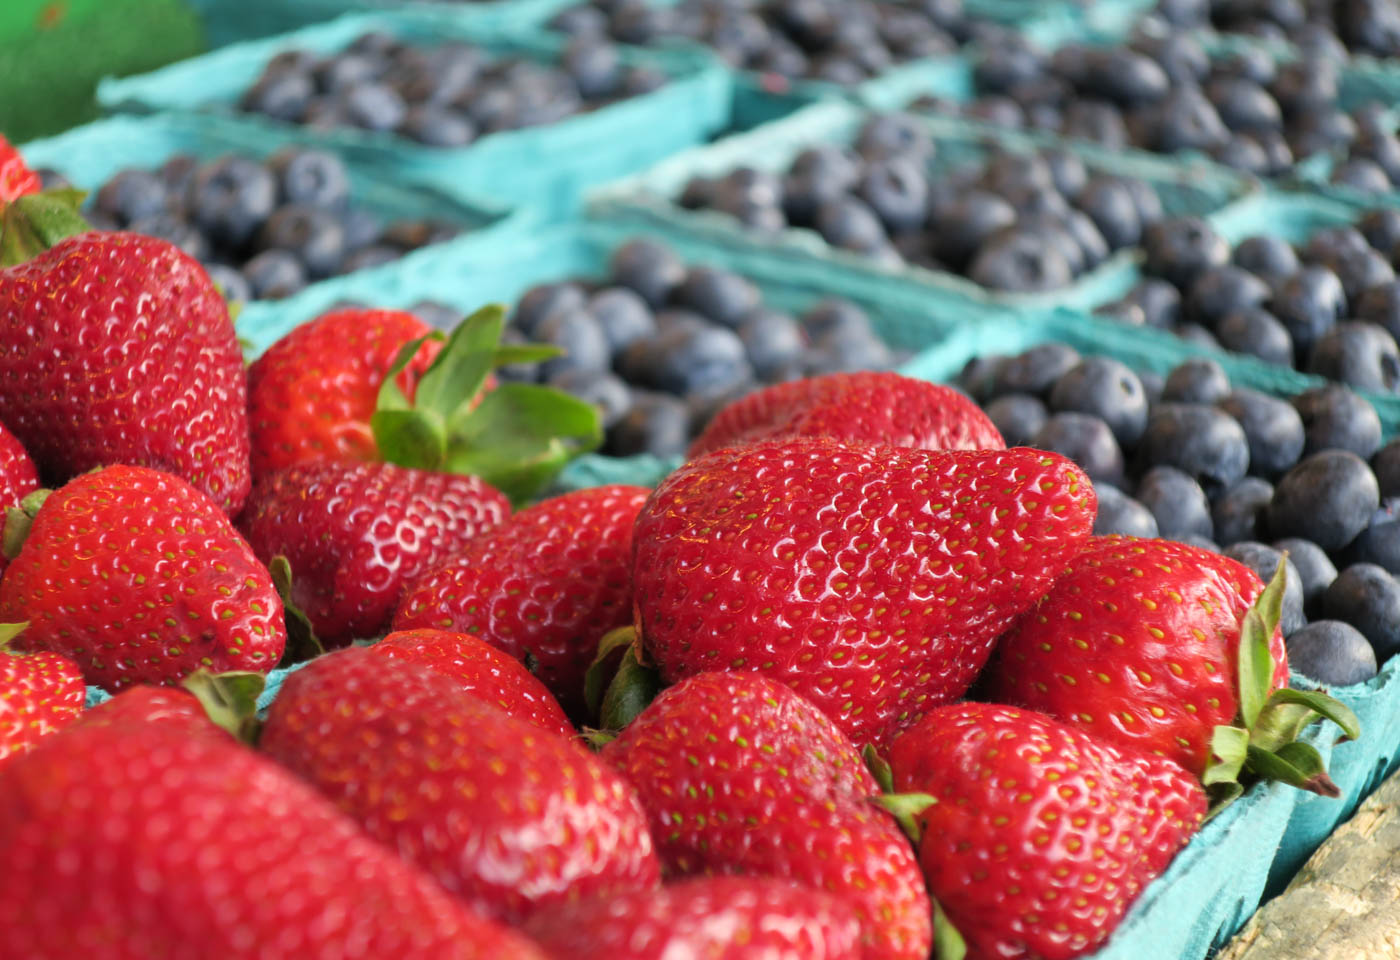 Strawberries and blueberries, taken on the Canon PowerShot G9 X digital camera